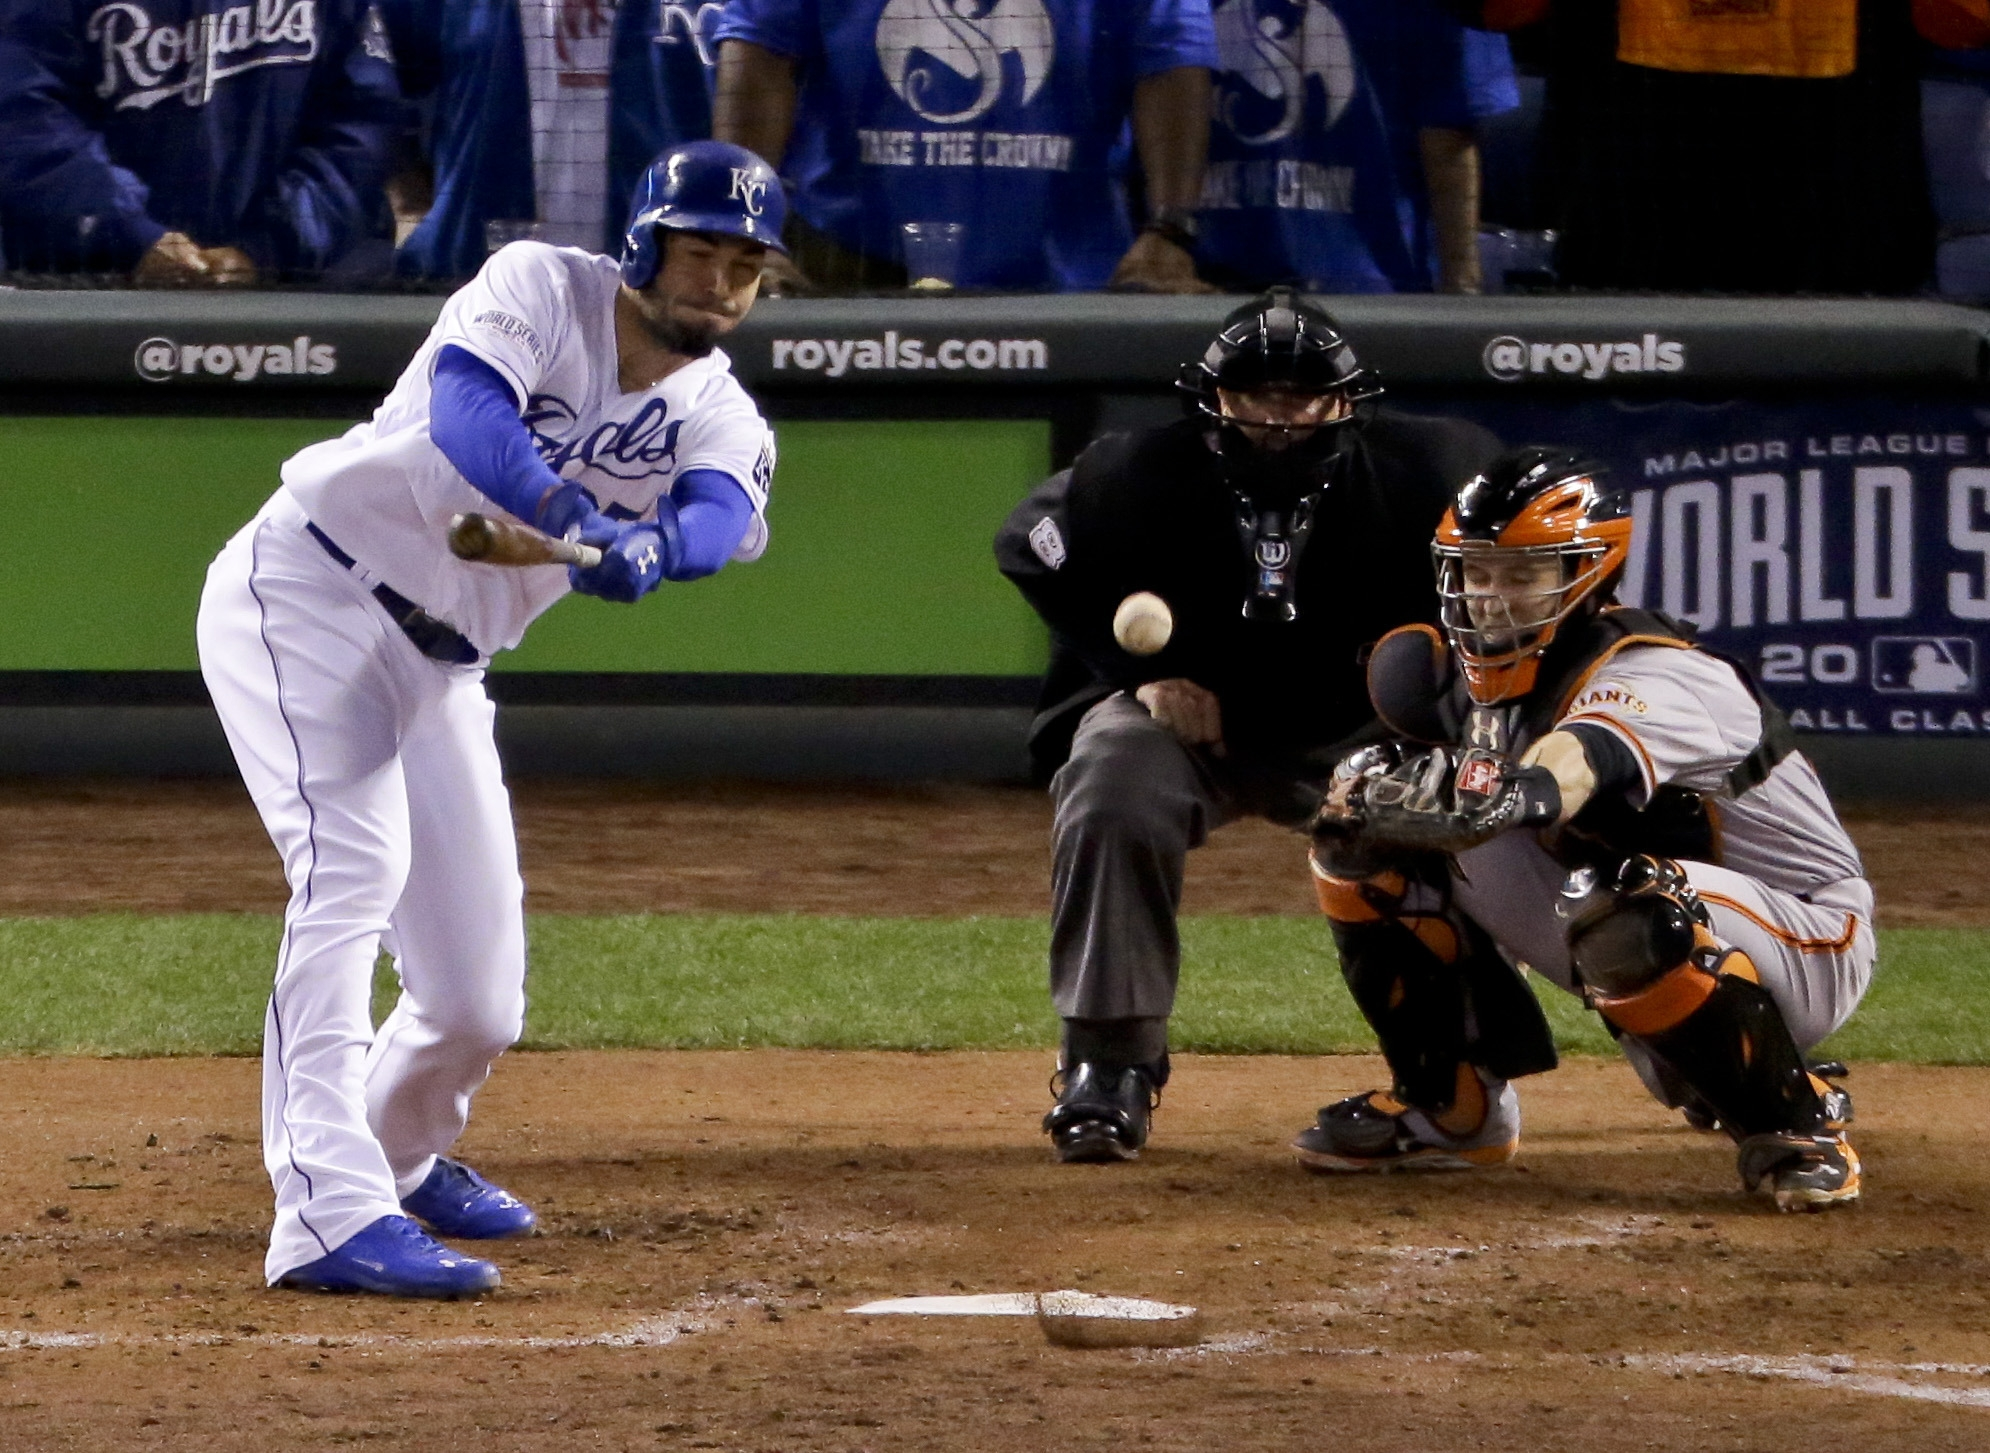 Kansas City's Eric Hosmer watches his two-run double during the second inning of Game Six of the World Series Tuesday. The Royals scored seven runs in the second inning against the Giants.